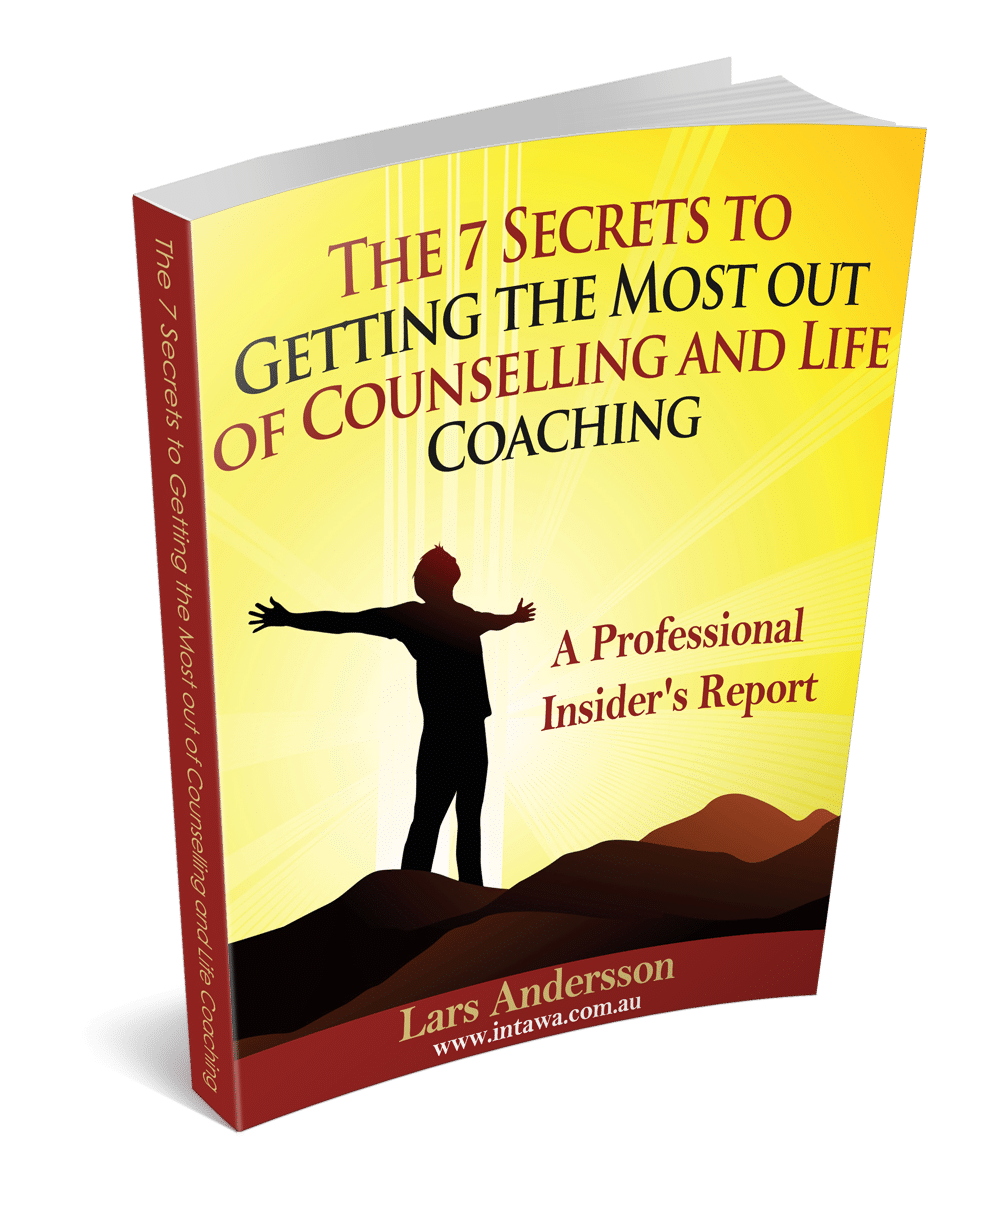 the 7 secrets to getting the most out of counselling and life coaching